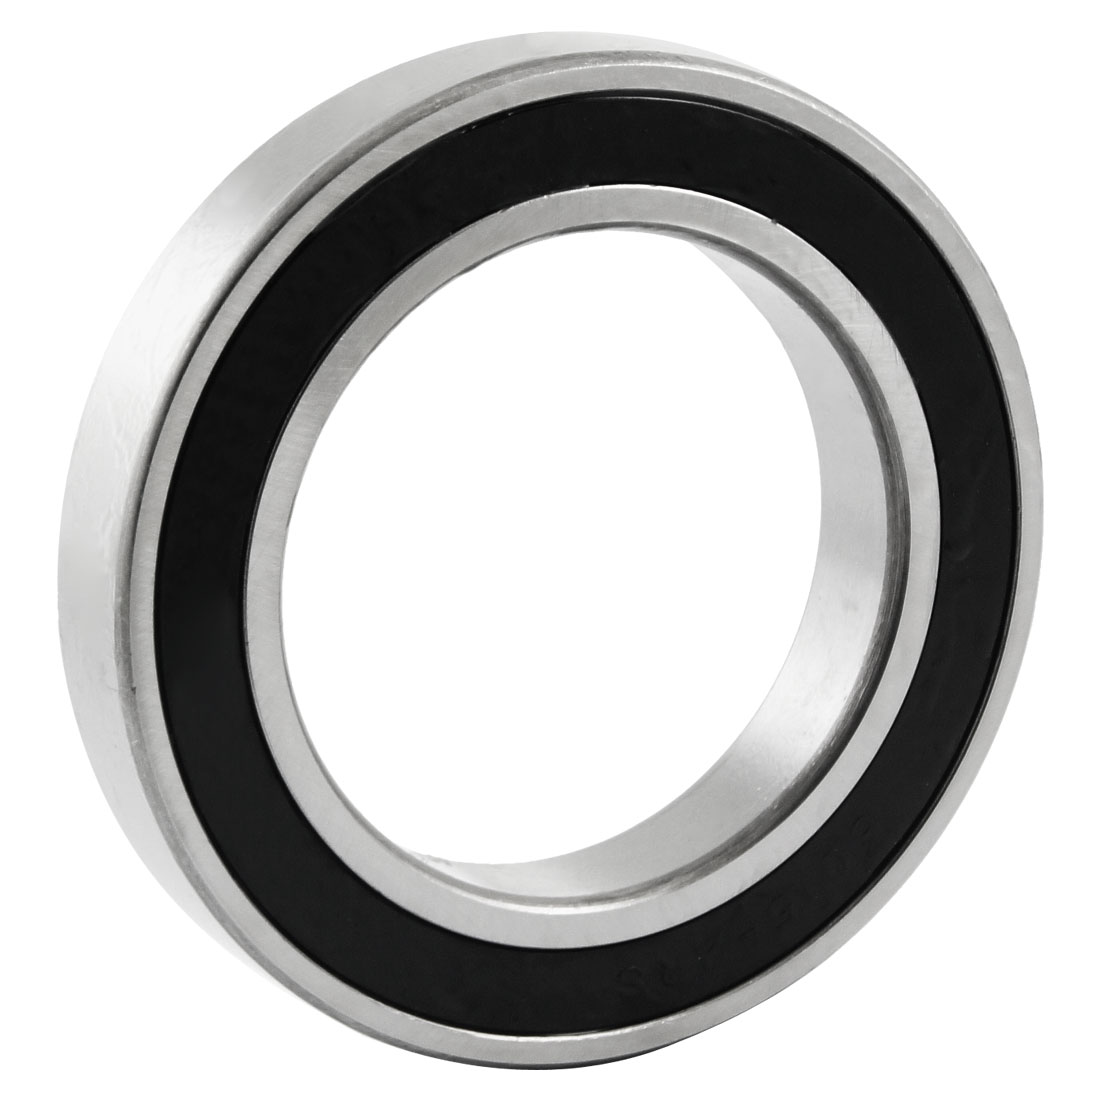 6015 2RS Black Rubber Sealed Deep Groove Ball Bearing 75mm x 115mm x 20mm